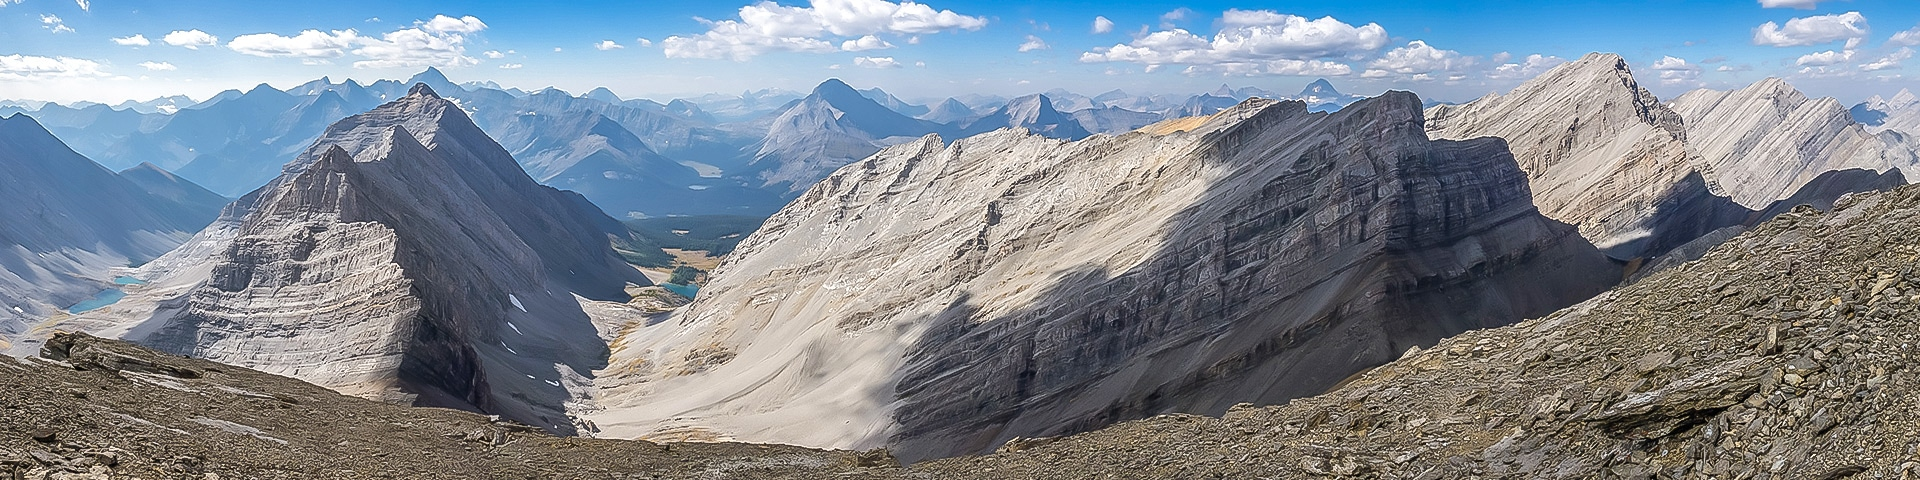 Panoramic views from the Fortress scramble in Kananaskis, the Canadian Rockies